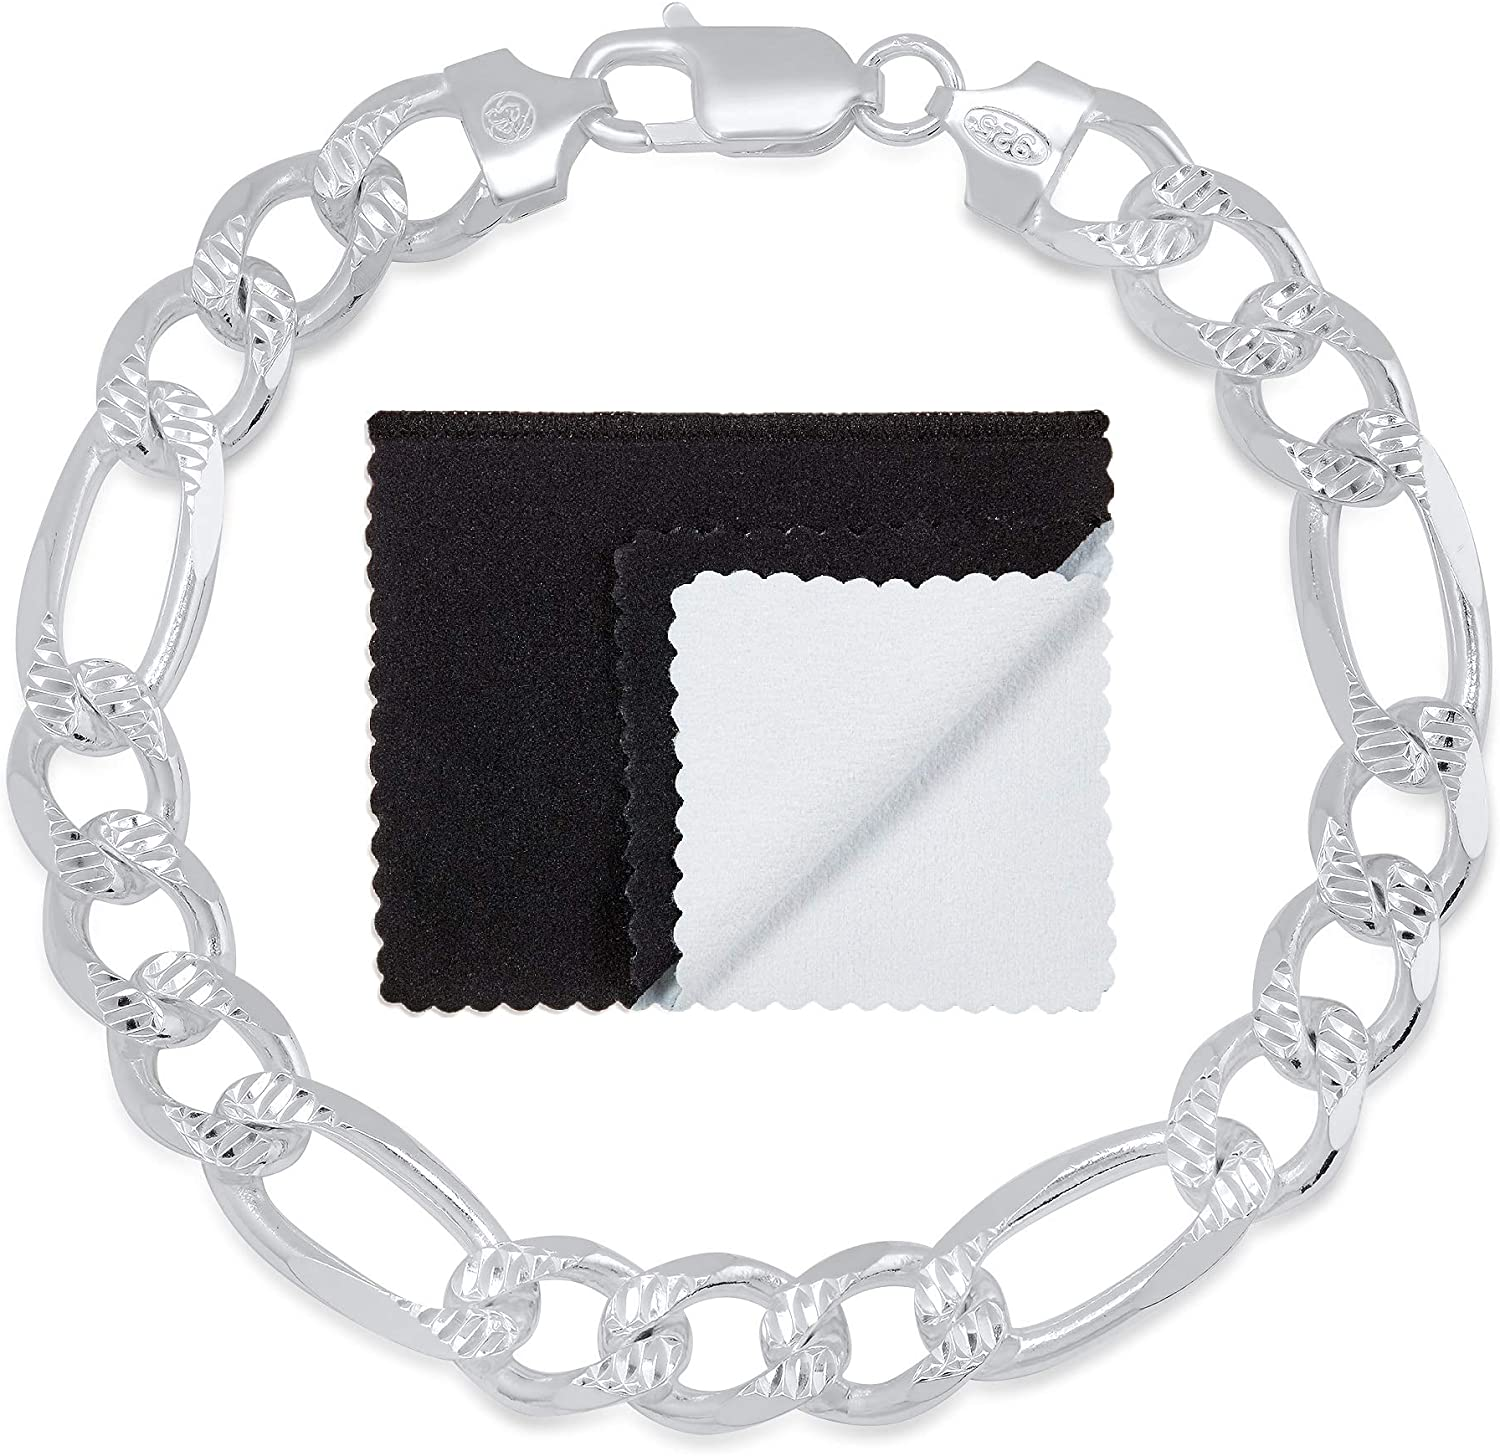 9.5mm .925 Sterling Silver NEW before selling ☆ Diamond-Cut Flat Chain Max 77% OFF Bracele Figaro